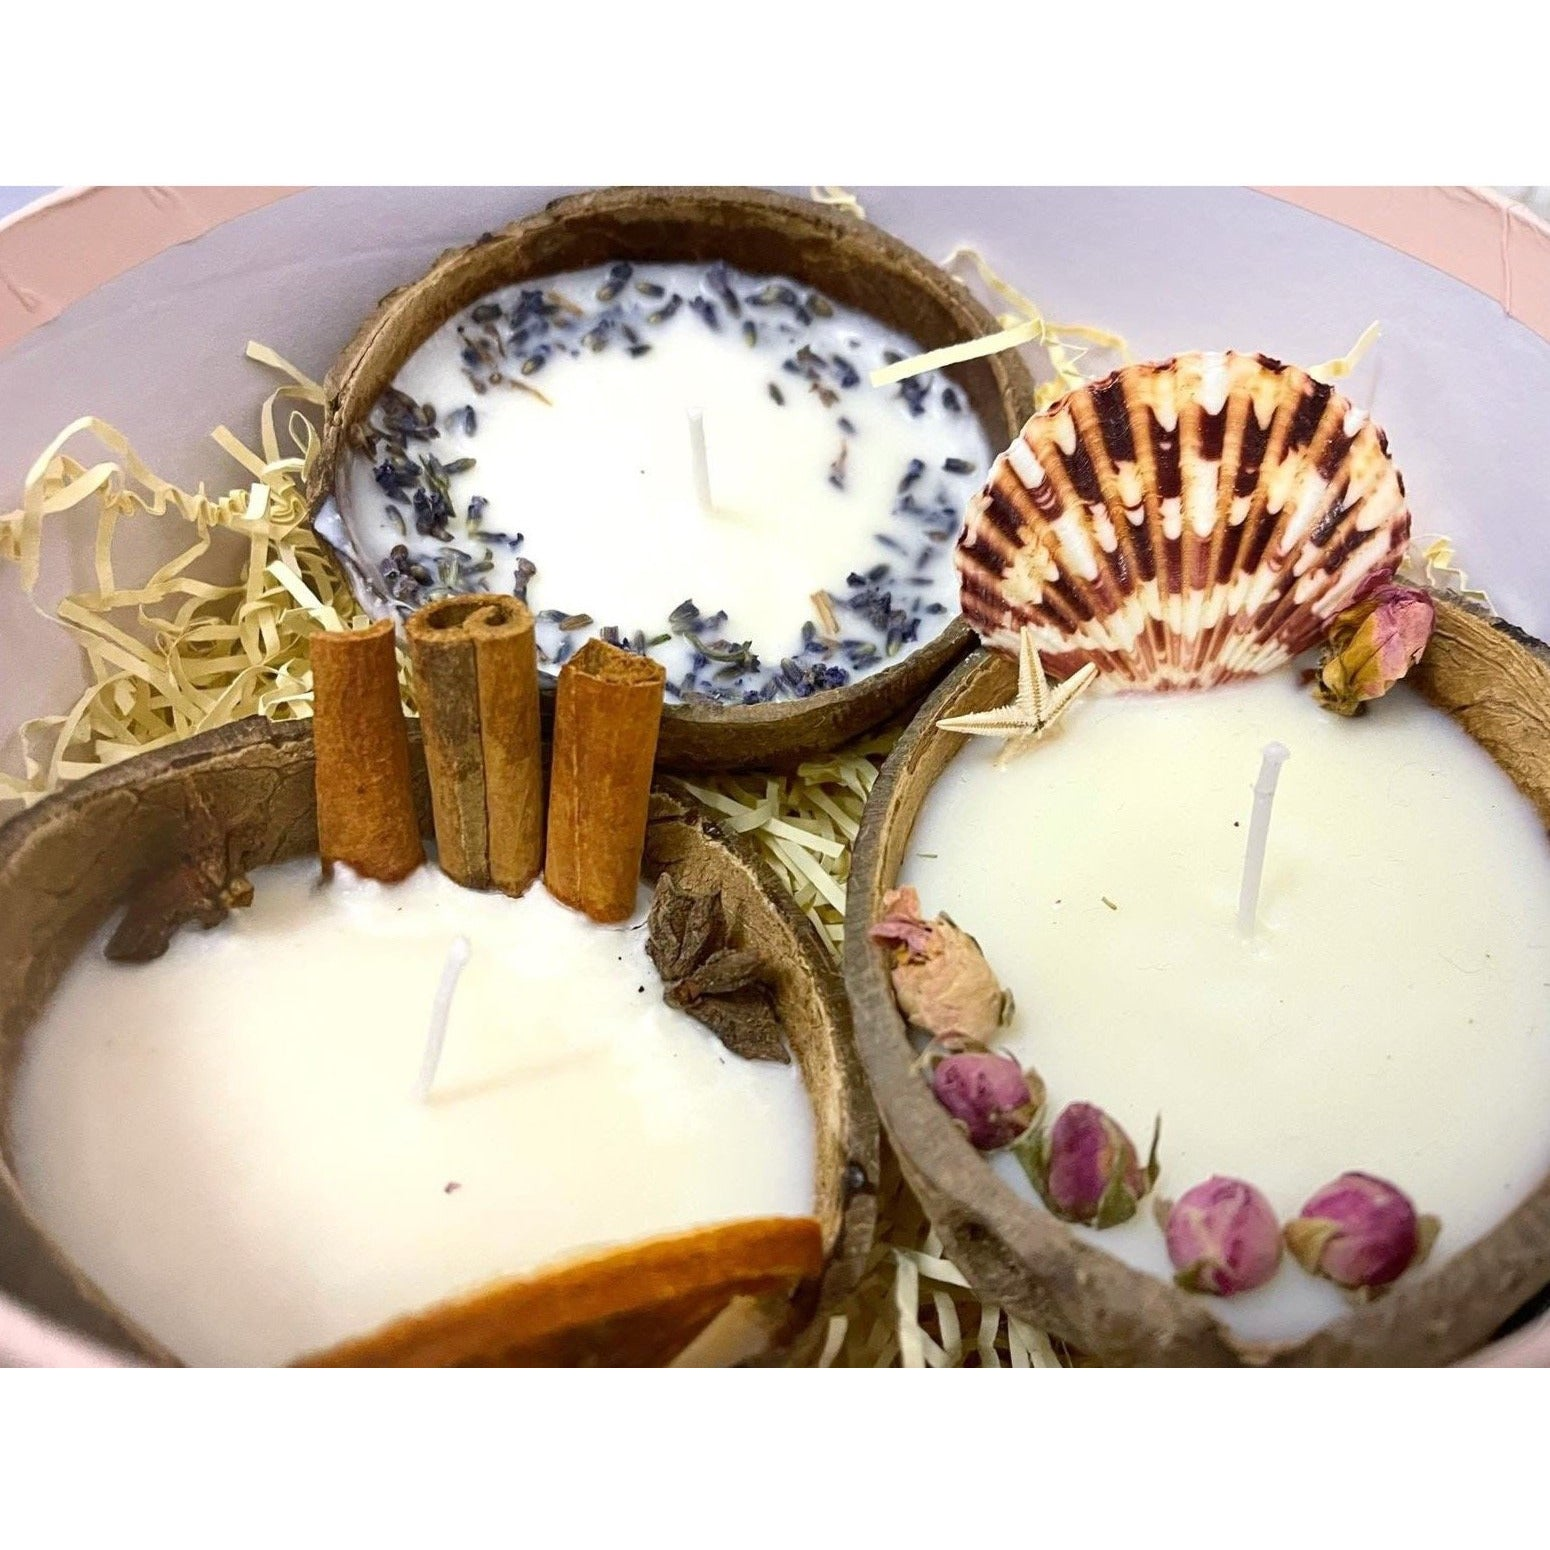 NEW 3 Coconut Candles Gift Set with Coconut & Vanilla, Lavender, Cinnamon&Orange gentle scented Premium Soy candles in coconut shell, PRE ORDER delivery end of February - natoorio